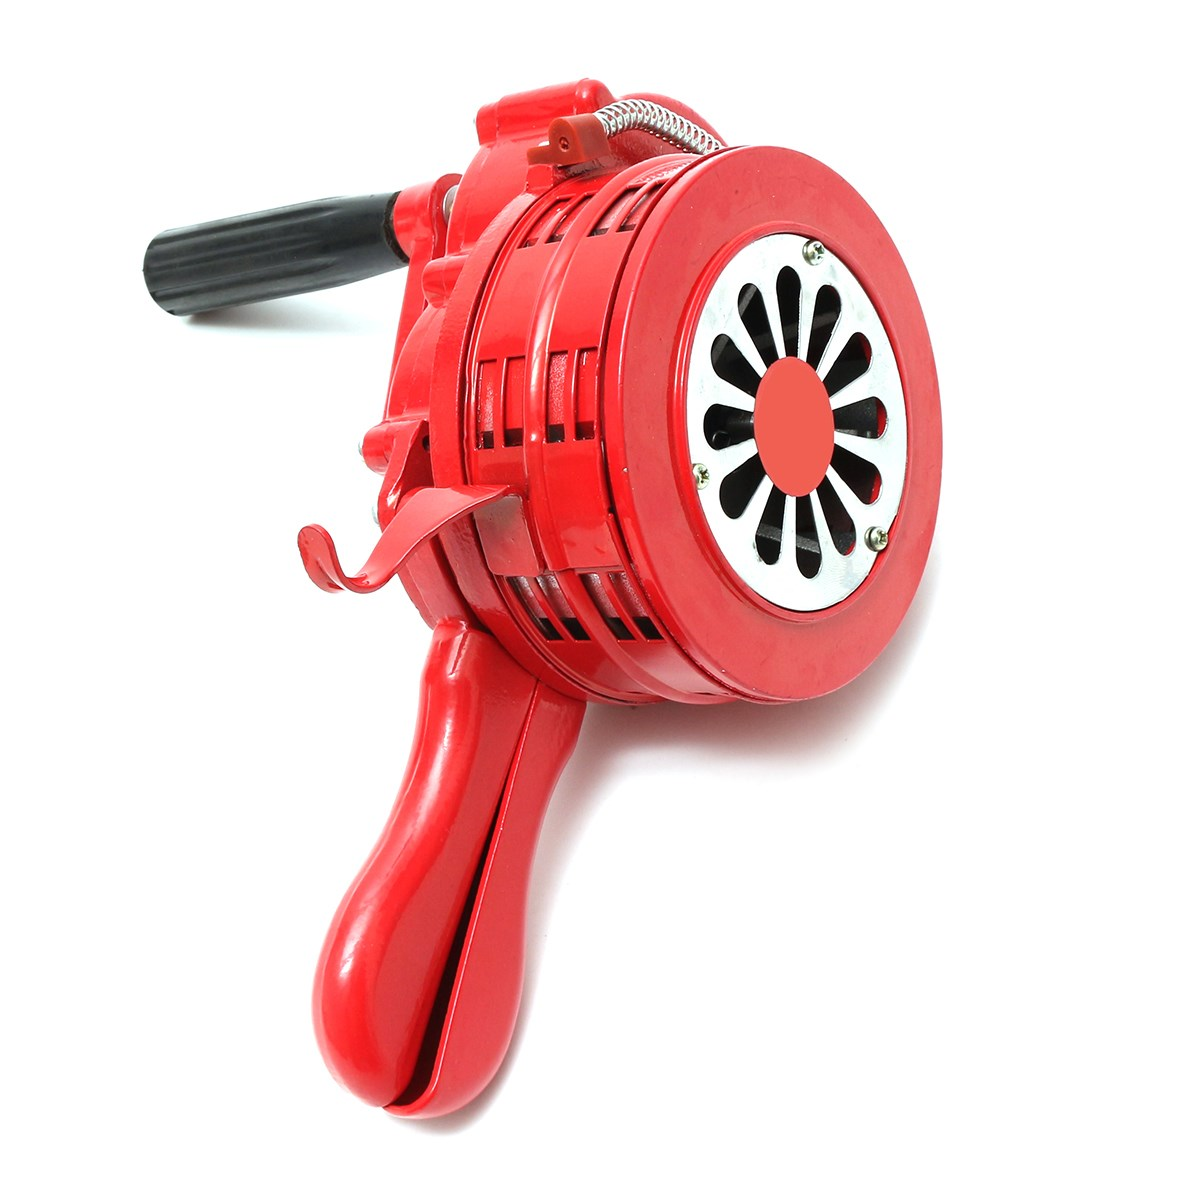 Safurance 4.5 Red Aluminium Alloy Handheld Manual Operated Security Alarm Air Raid Siren Portable Safety ac110v 160db motor driven air raid siren metal horn industry boat alarm